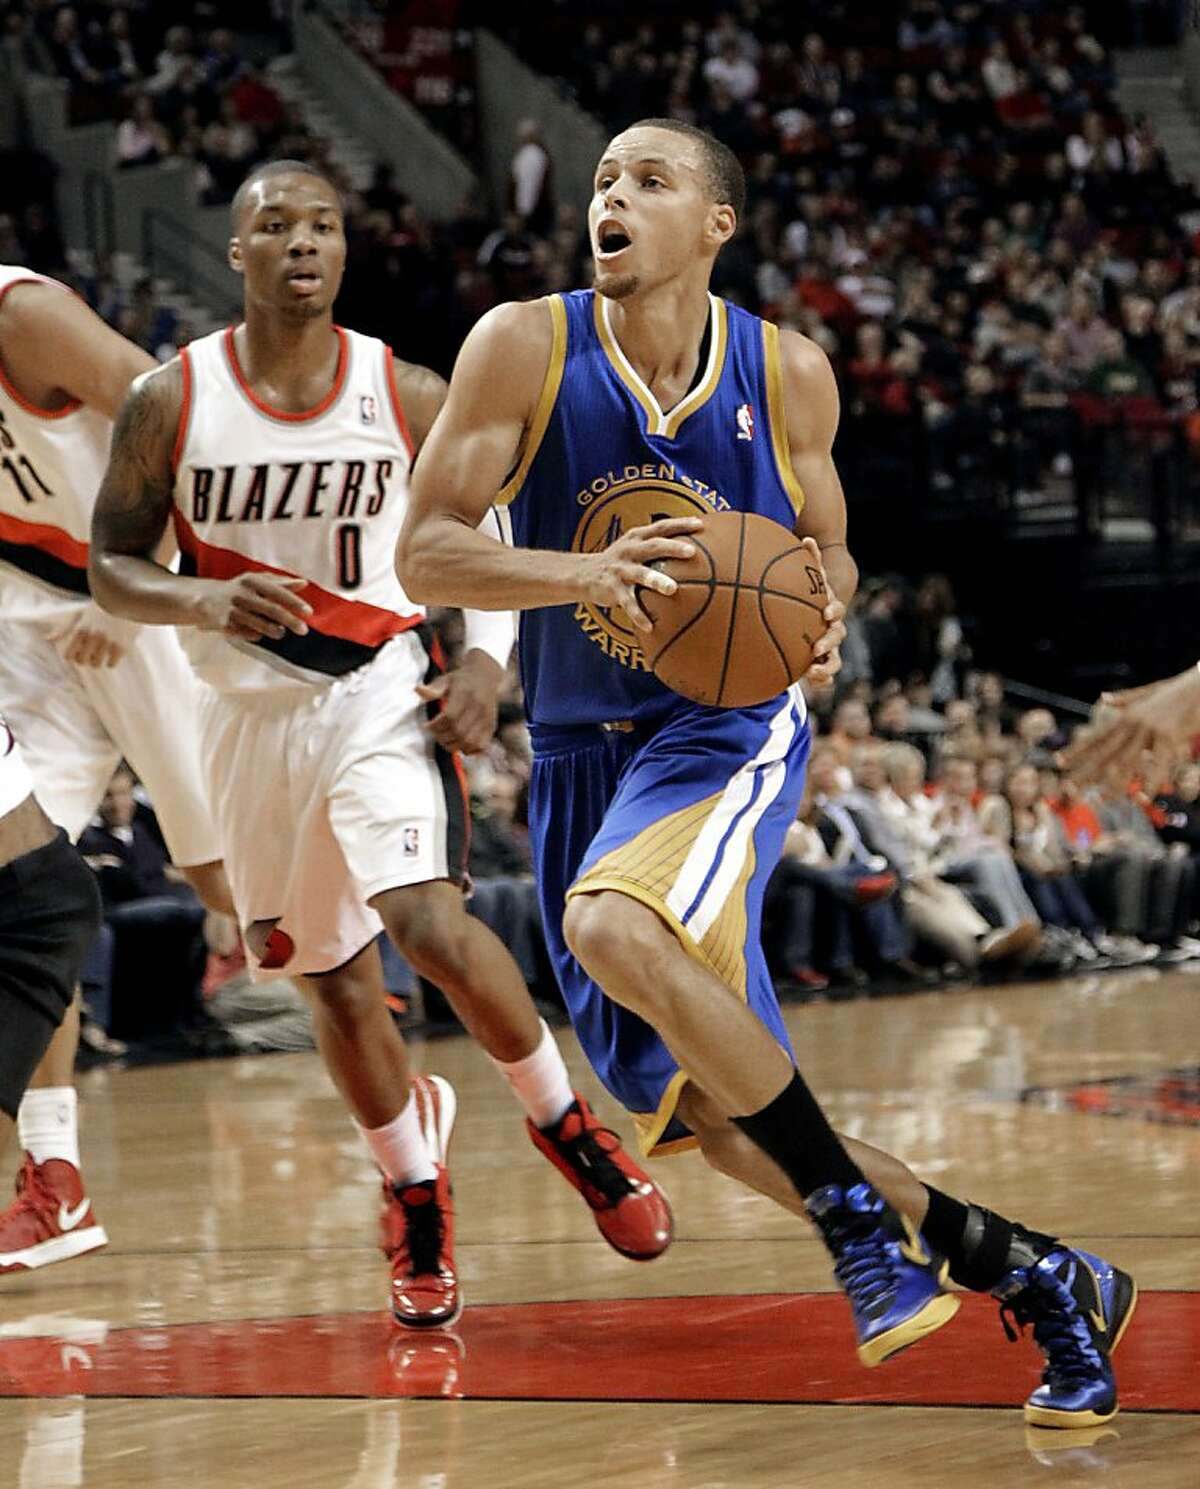 Golden State Warriors guard Stephen Curry, right, drives to the basket past Portland Trail Blazers guard Damian Lillard during the first quarter of an NBA preseason basketball game in Portland, Ore., Friday, Oct. 19, 2012. (AP Photo/Don Ryan)